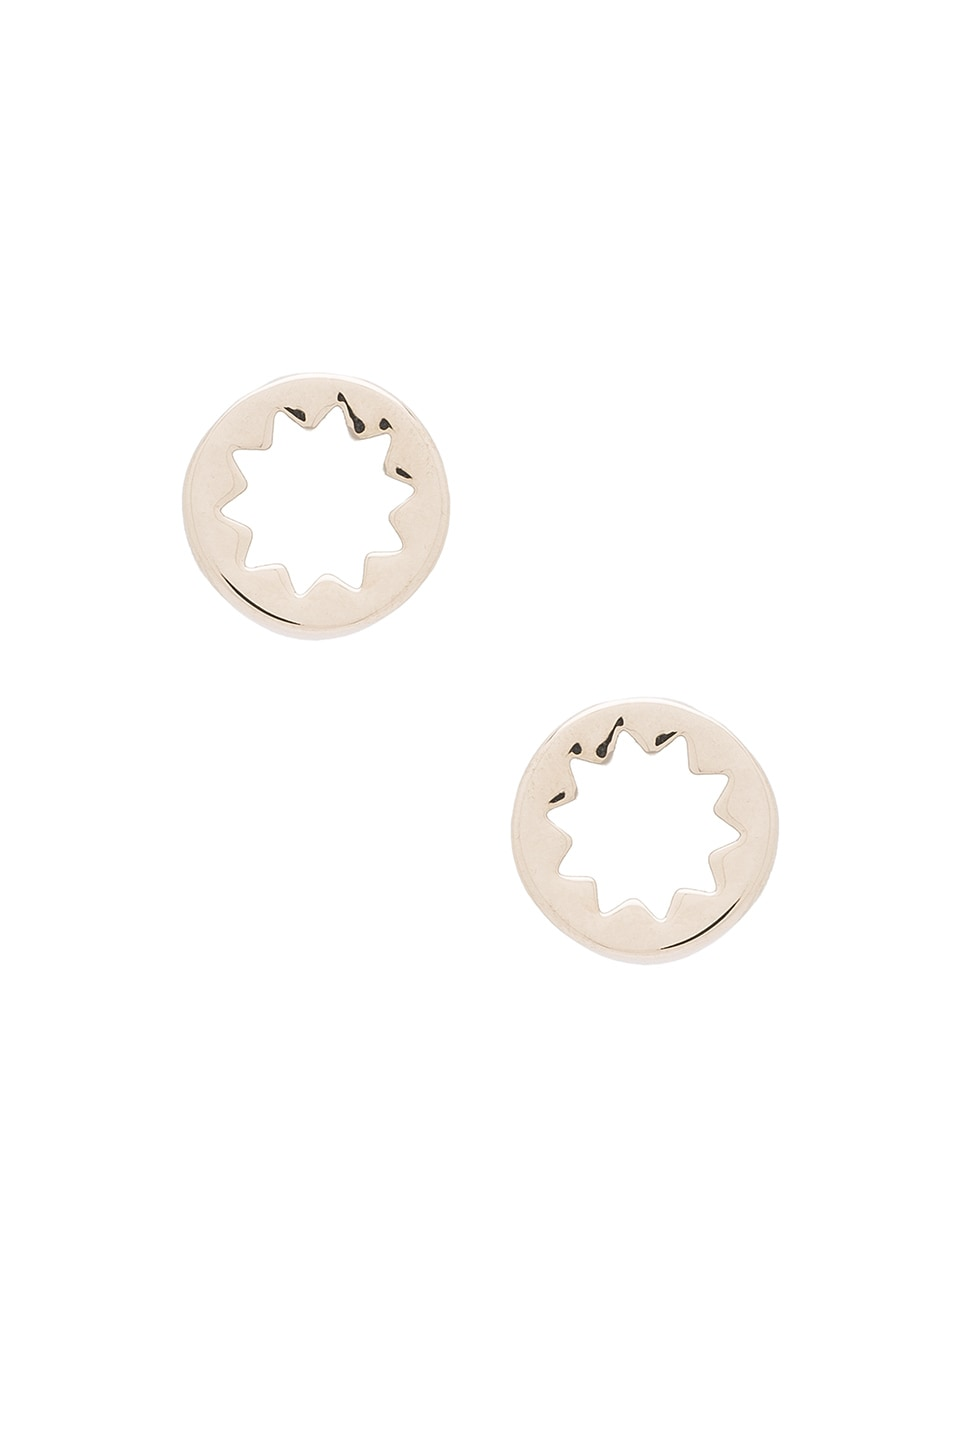 House of Harlow 1960 Sunburst Stud Earrings in Silver